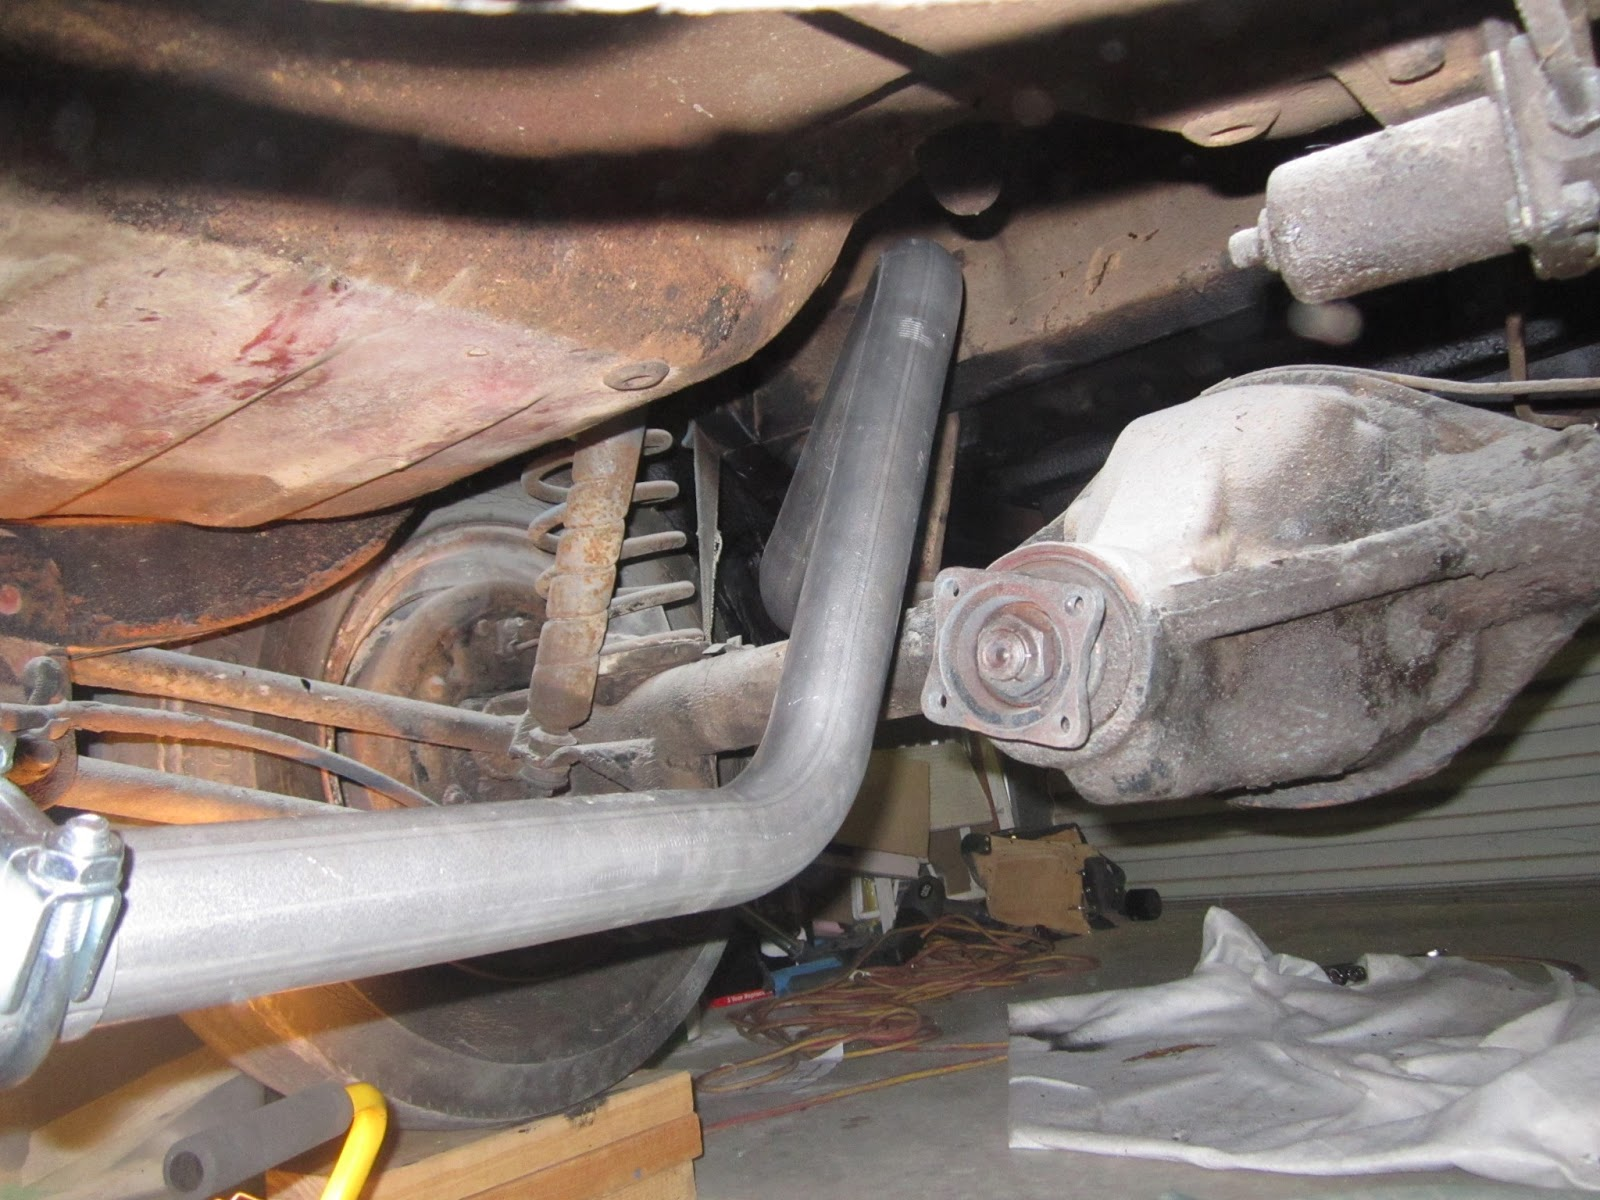 Stainless steel sport exhaust?